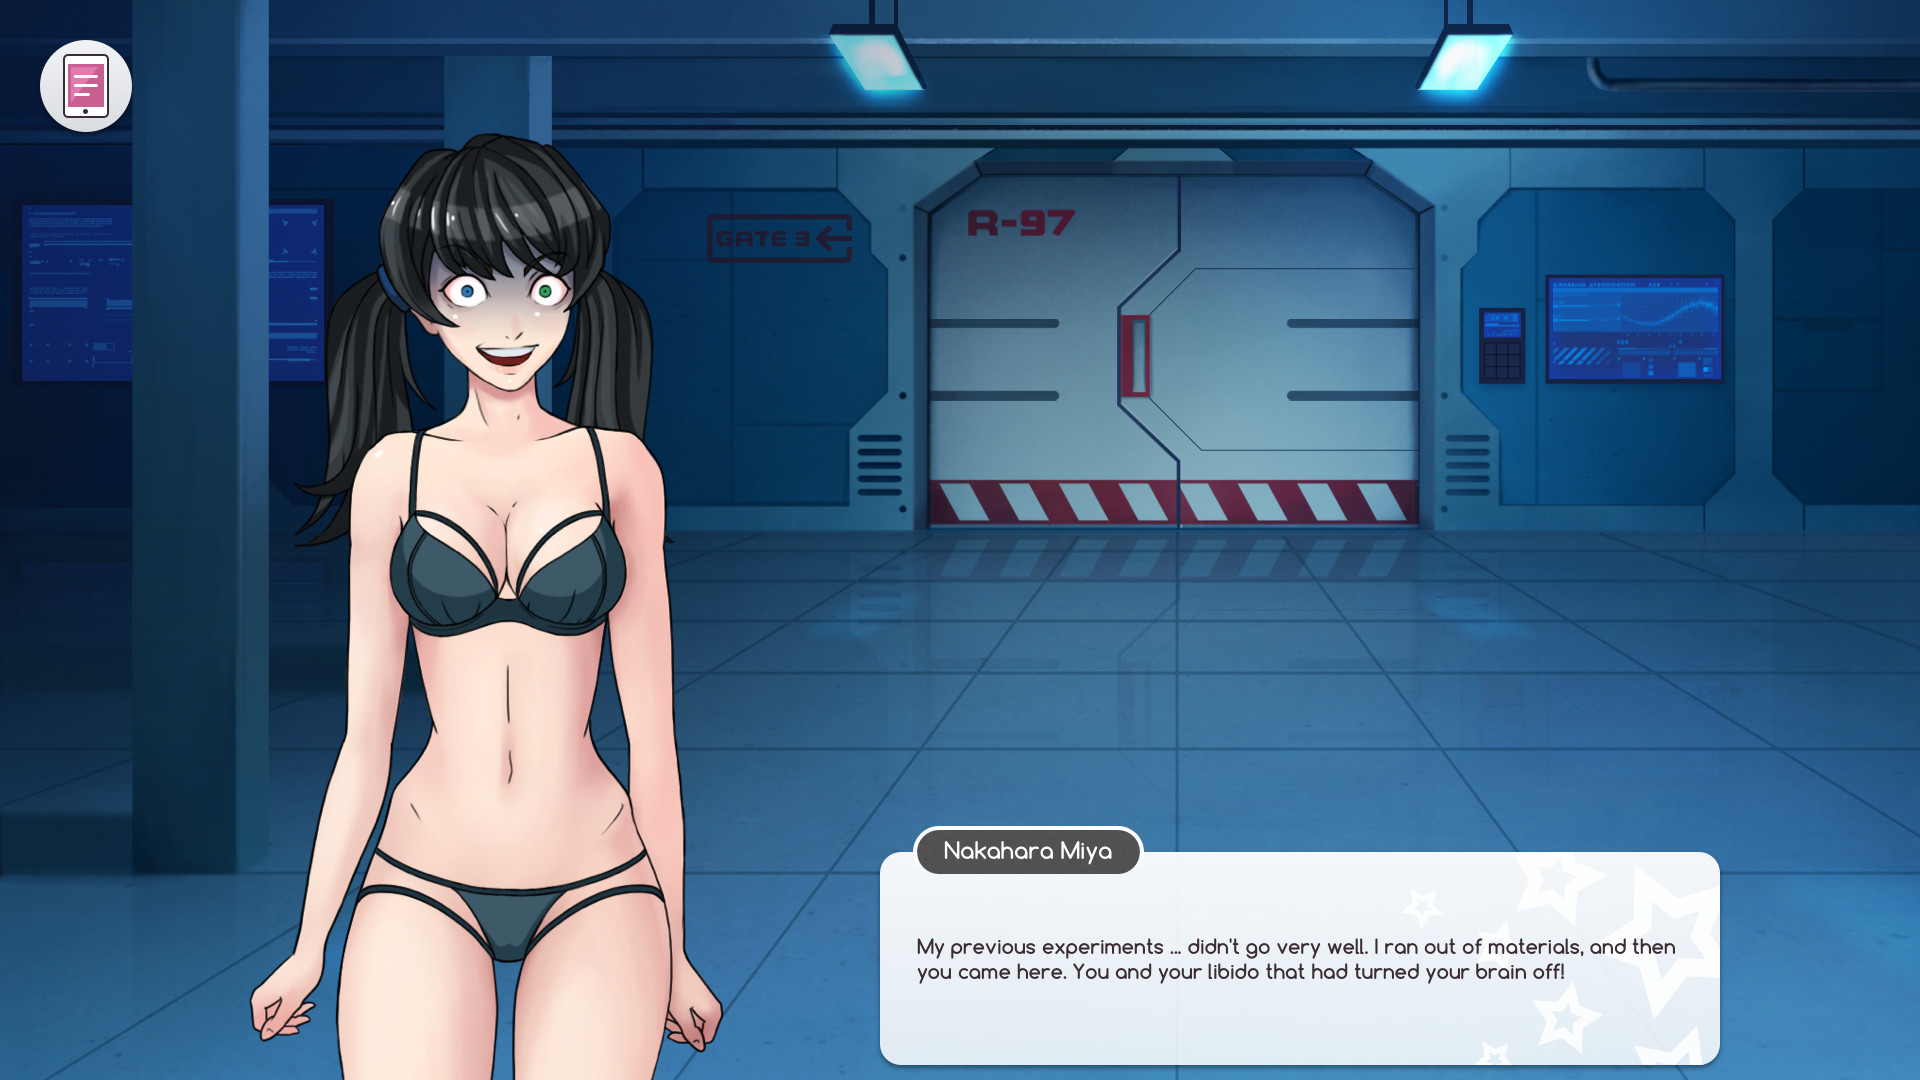 dating simulator anime for girls games full games